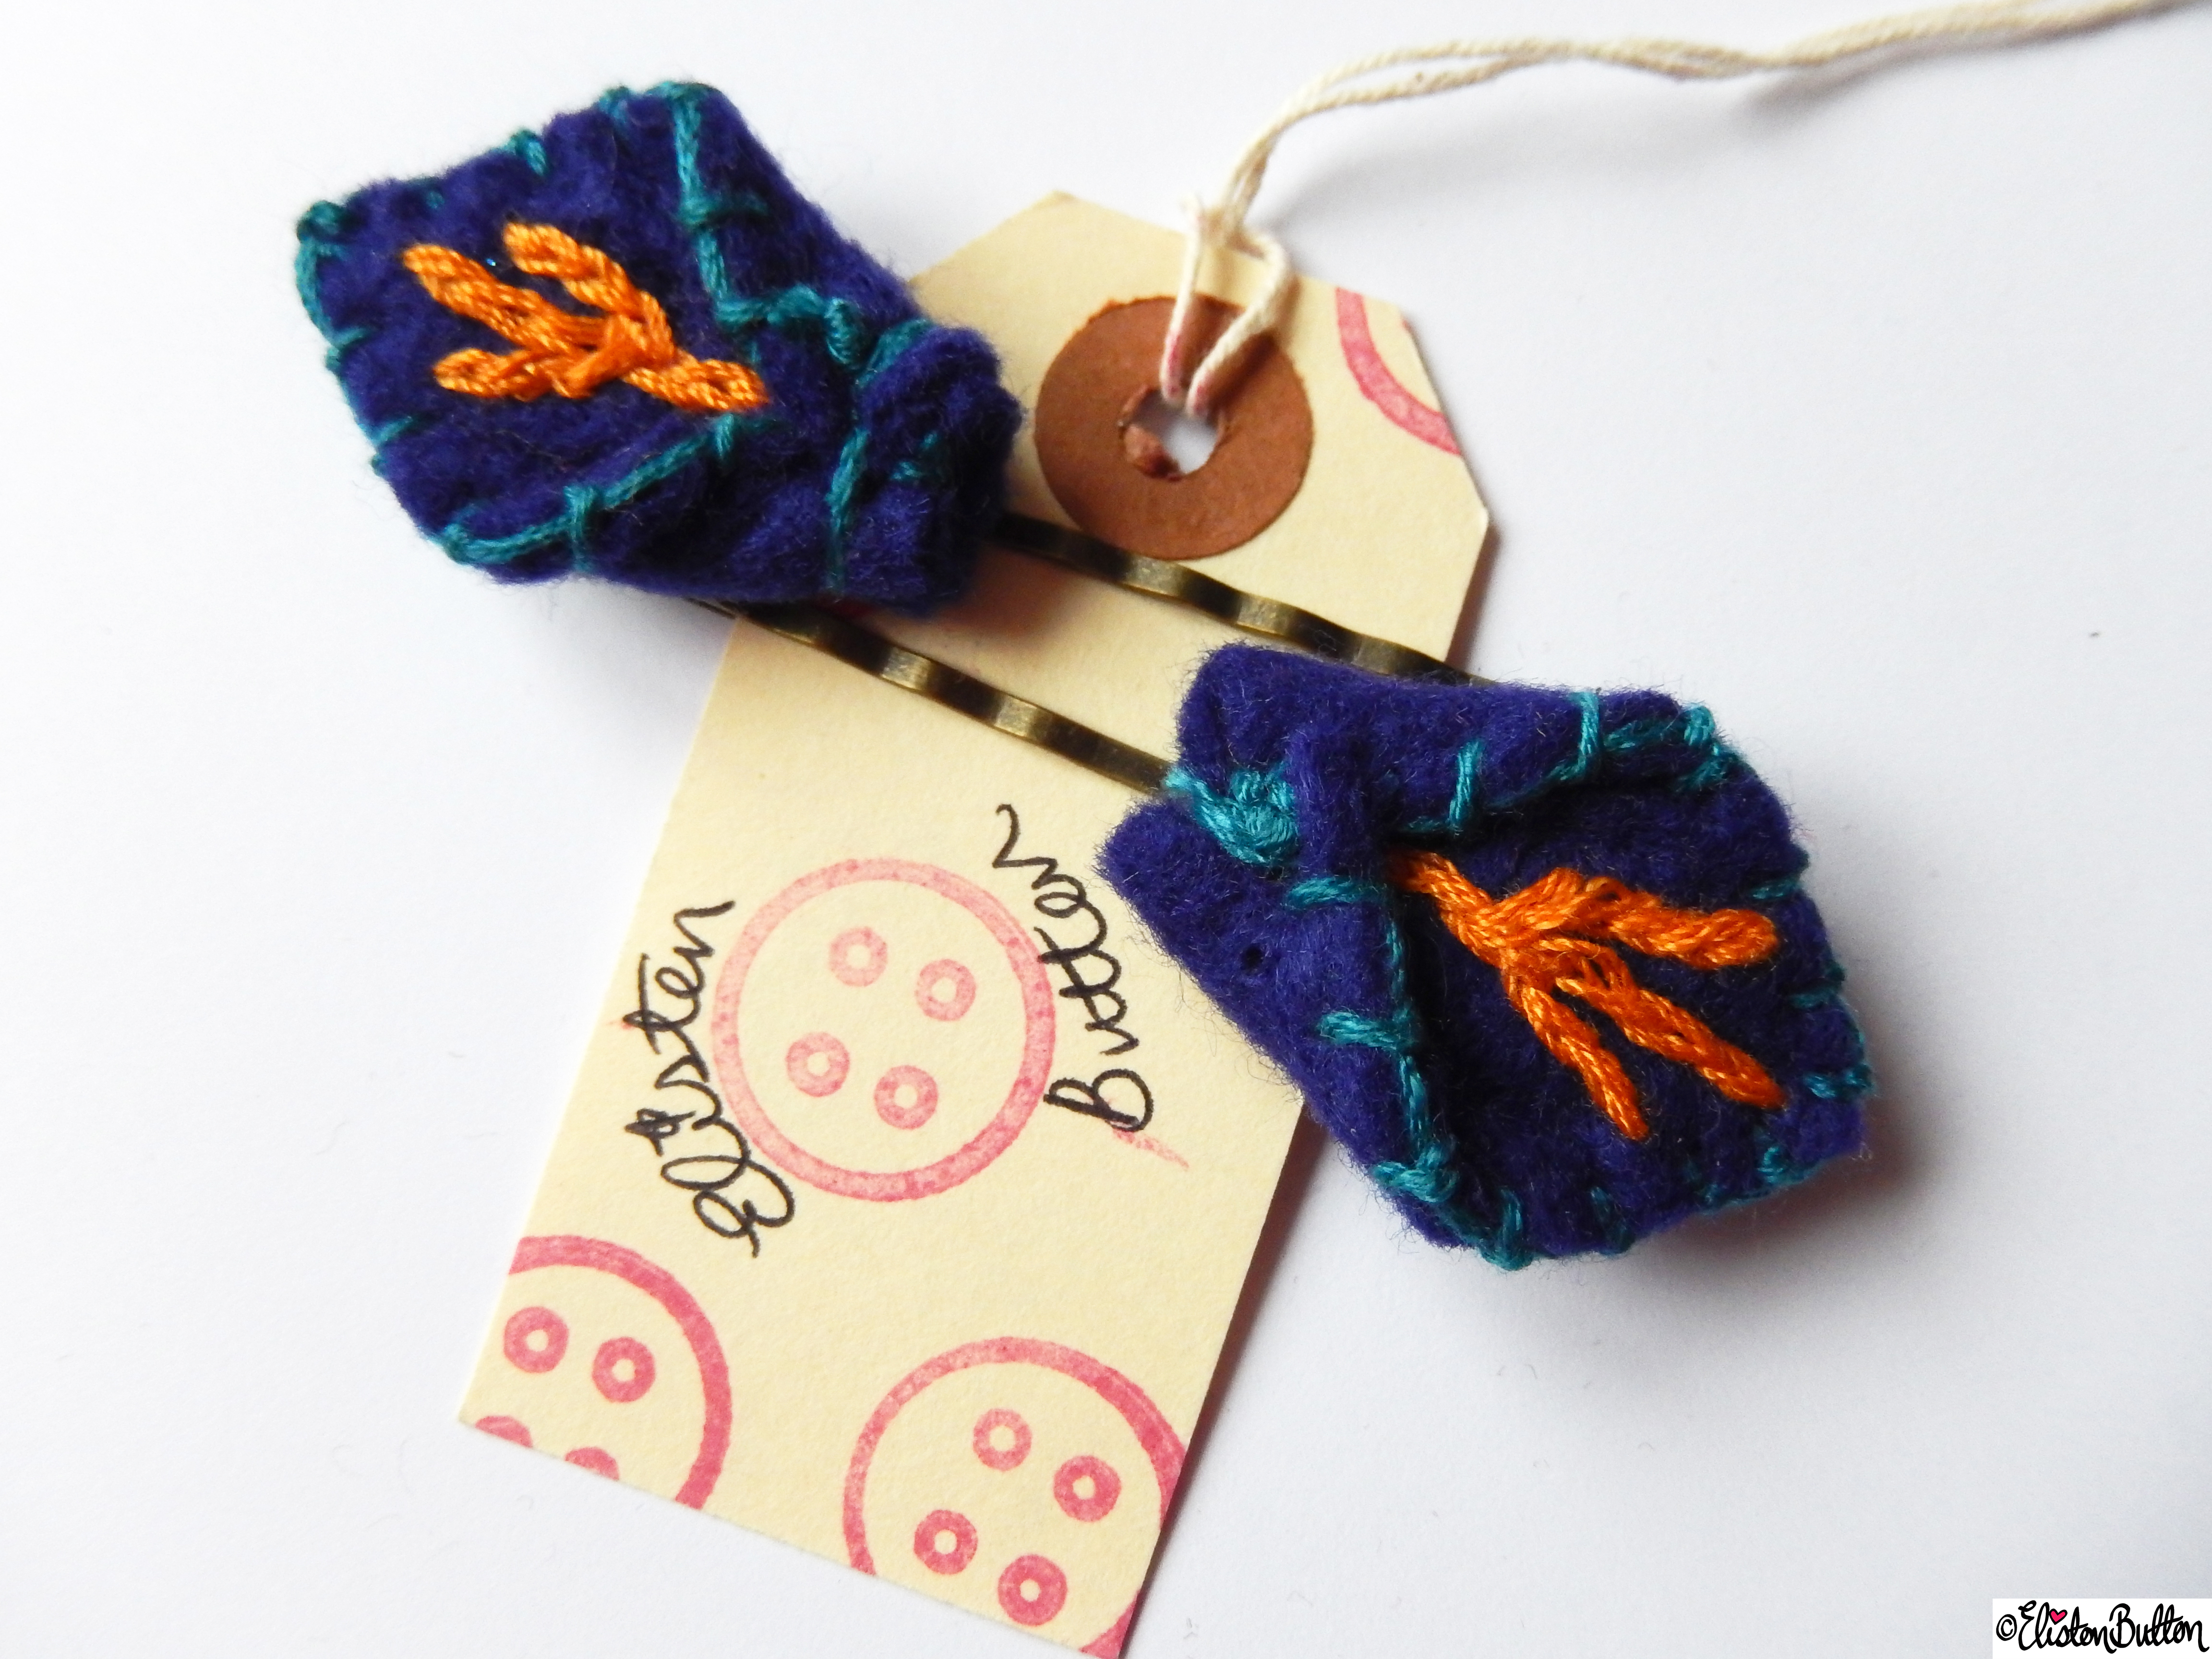 Blue, Turquoise and Orange Embroidered Felt Petal Hair Grips on Branded Luggage Tag - Create 28 - No.4 - Embroidered Felt Petal Hair Grips at www.elistonbutton.com - Eliston Button - That Crafty Kid – Art, Design, Craft & Adventure.